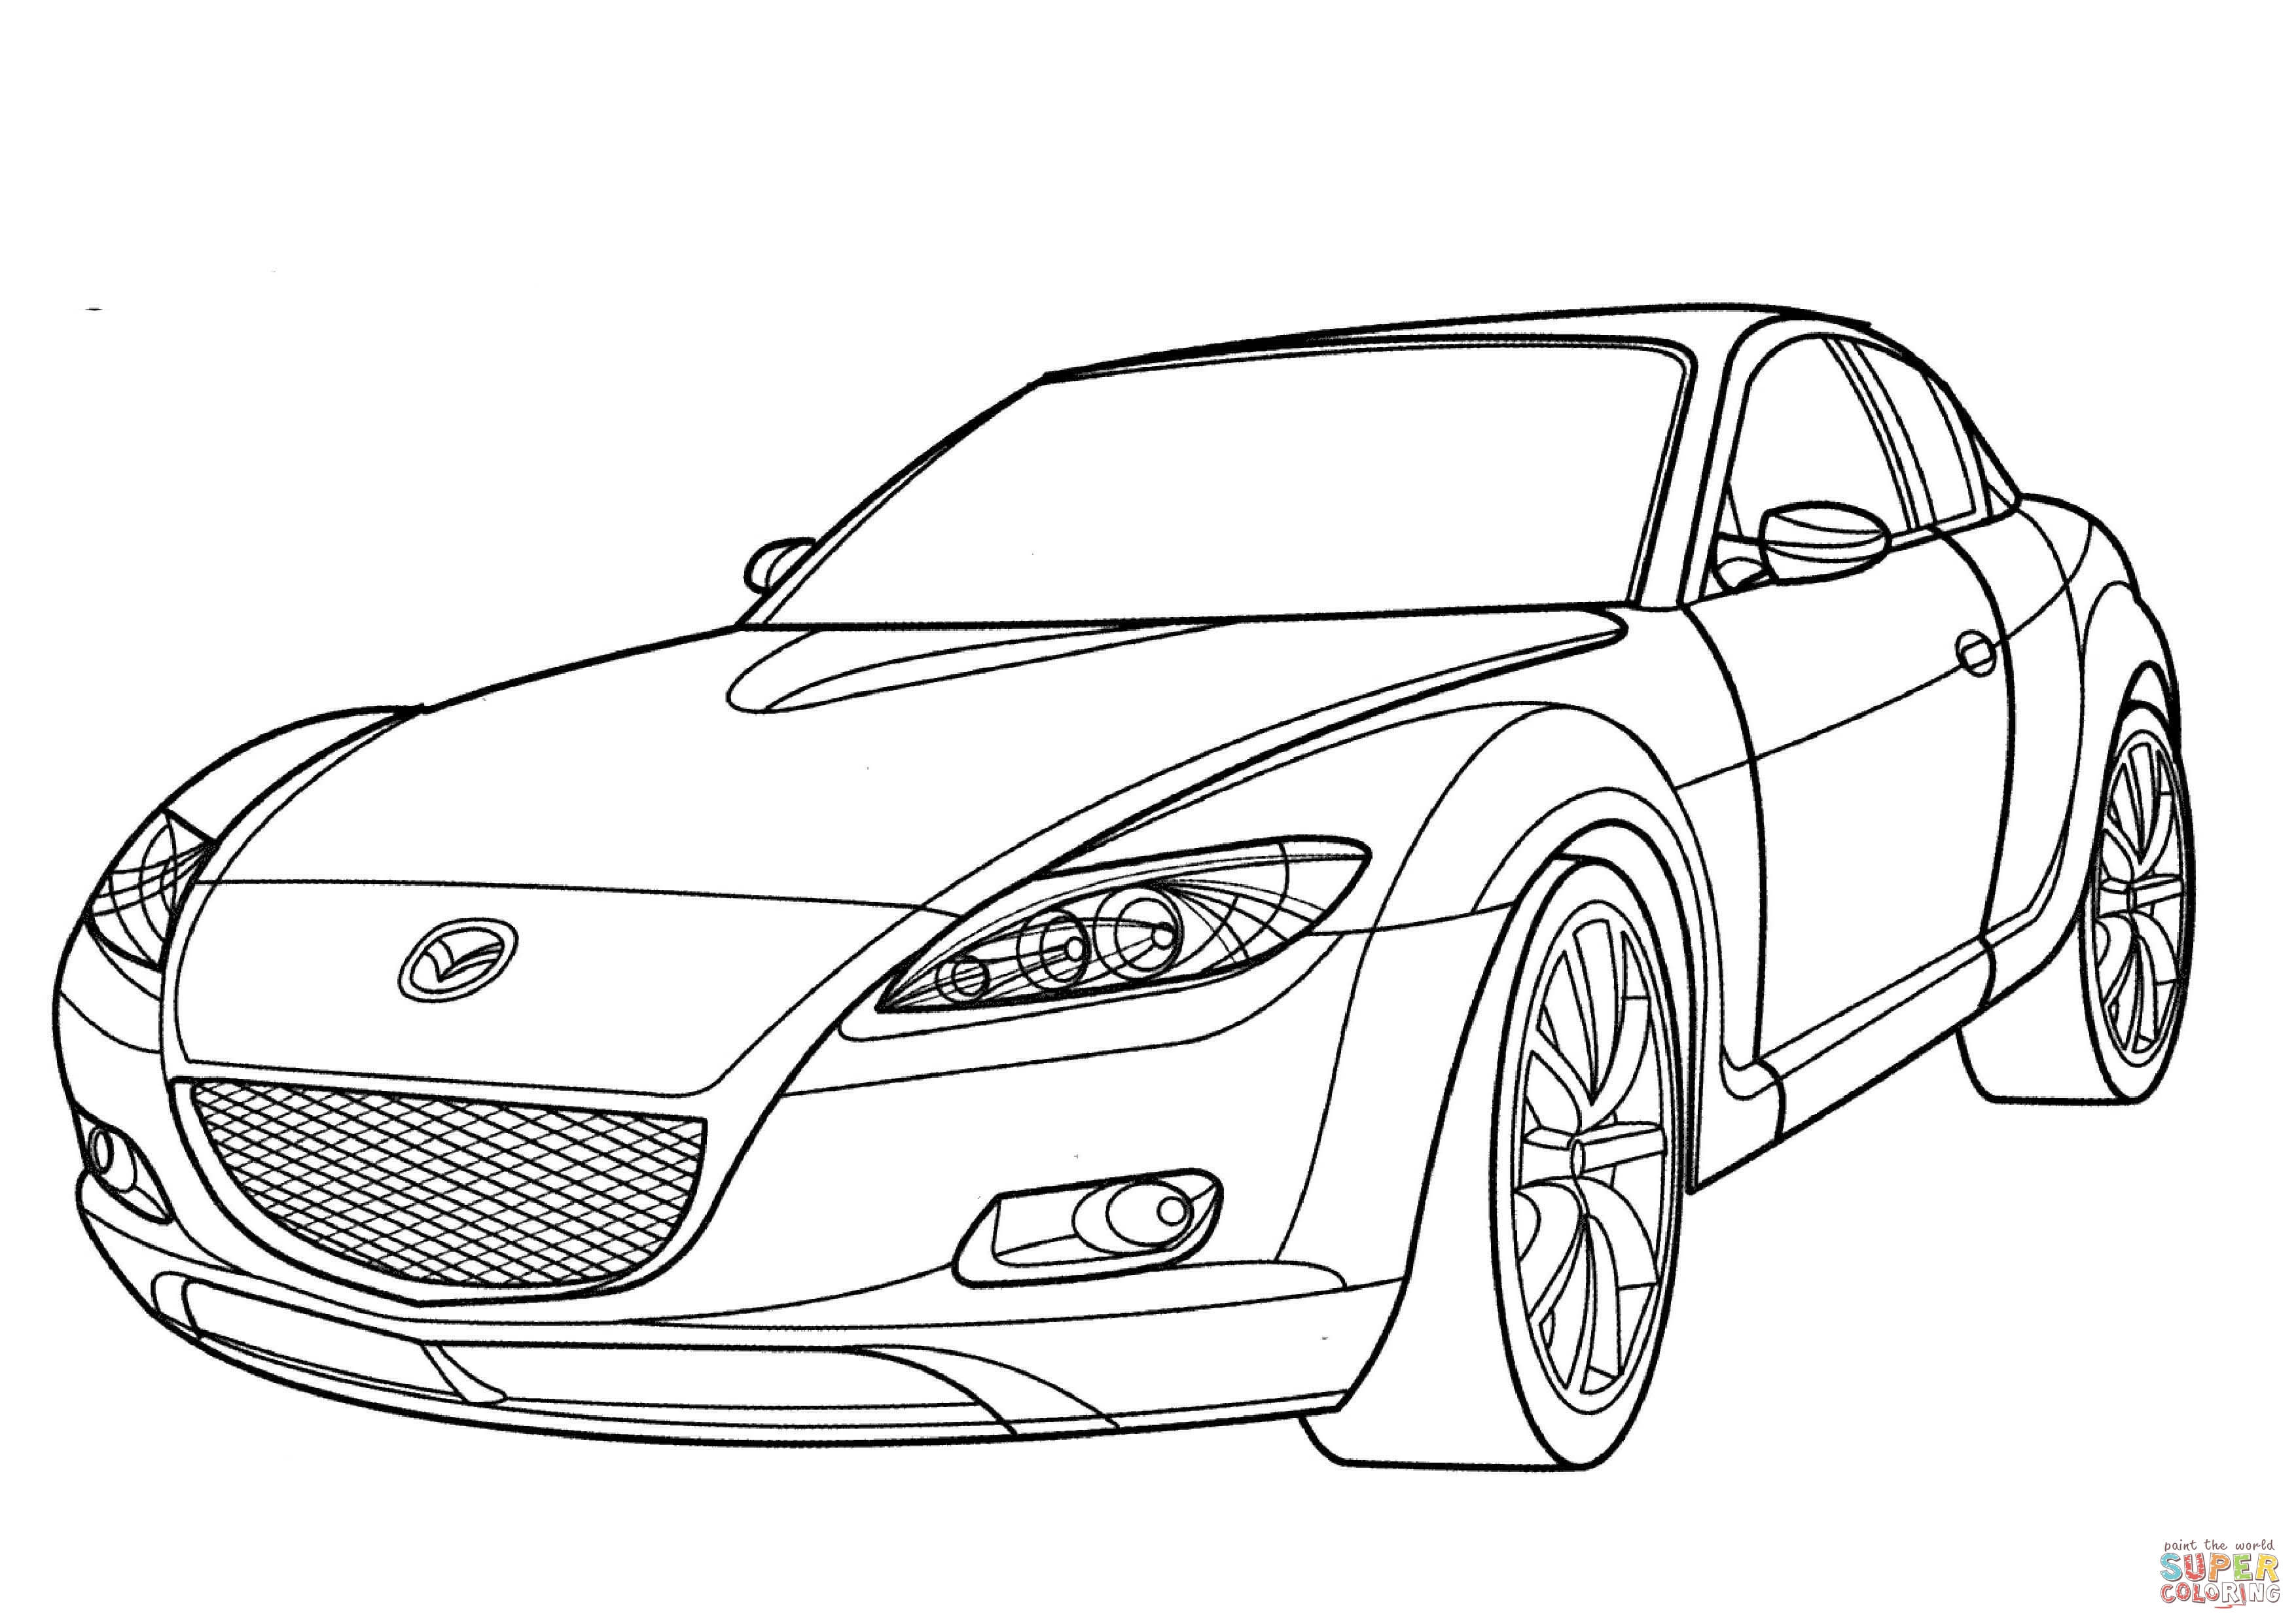 Car Drawing Top View At Getdrawings